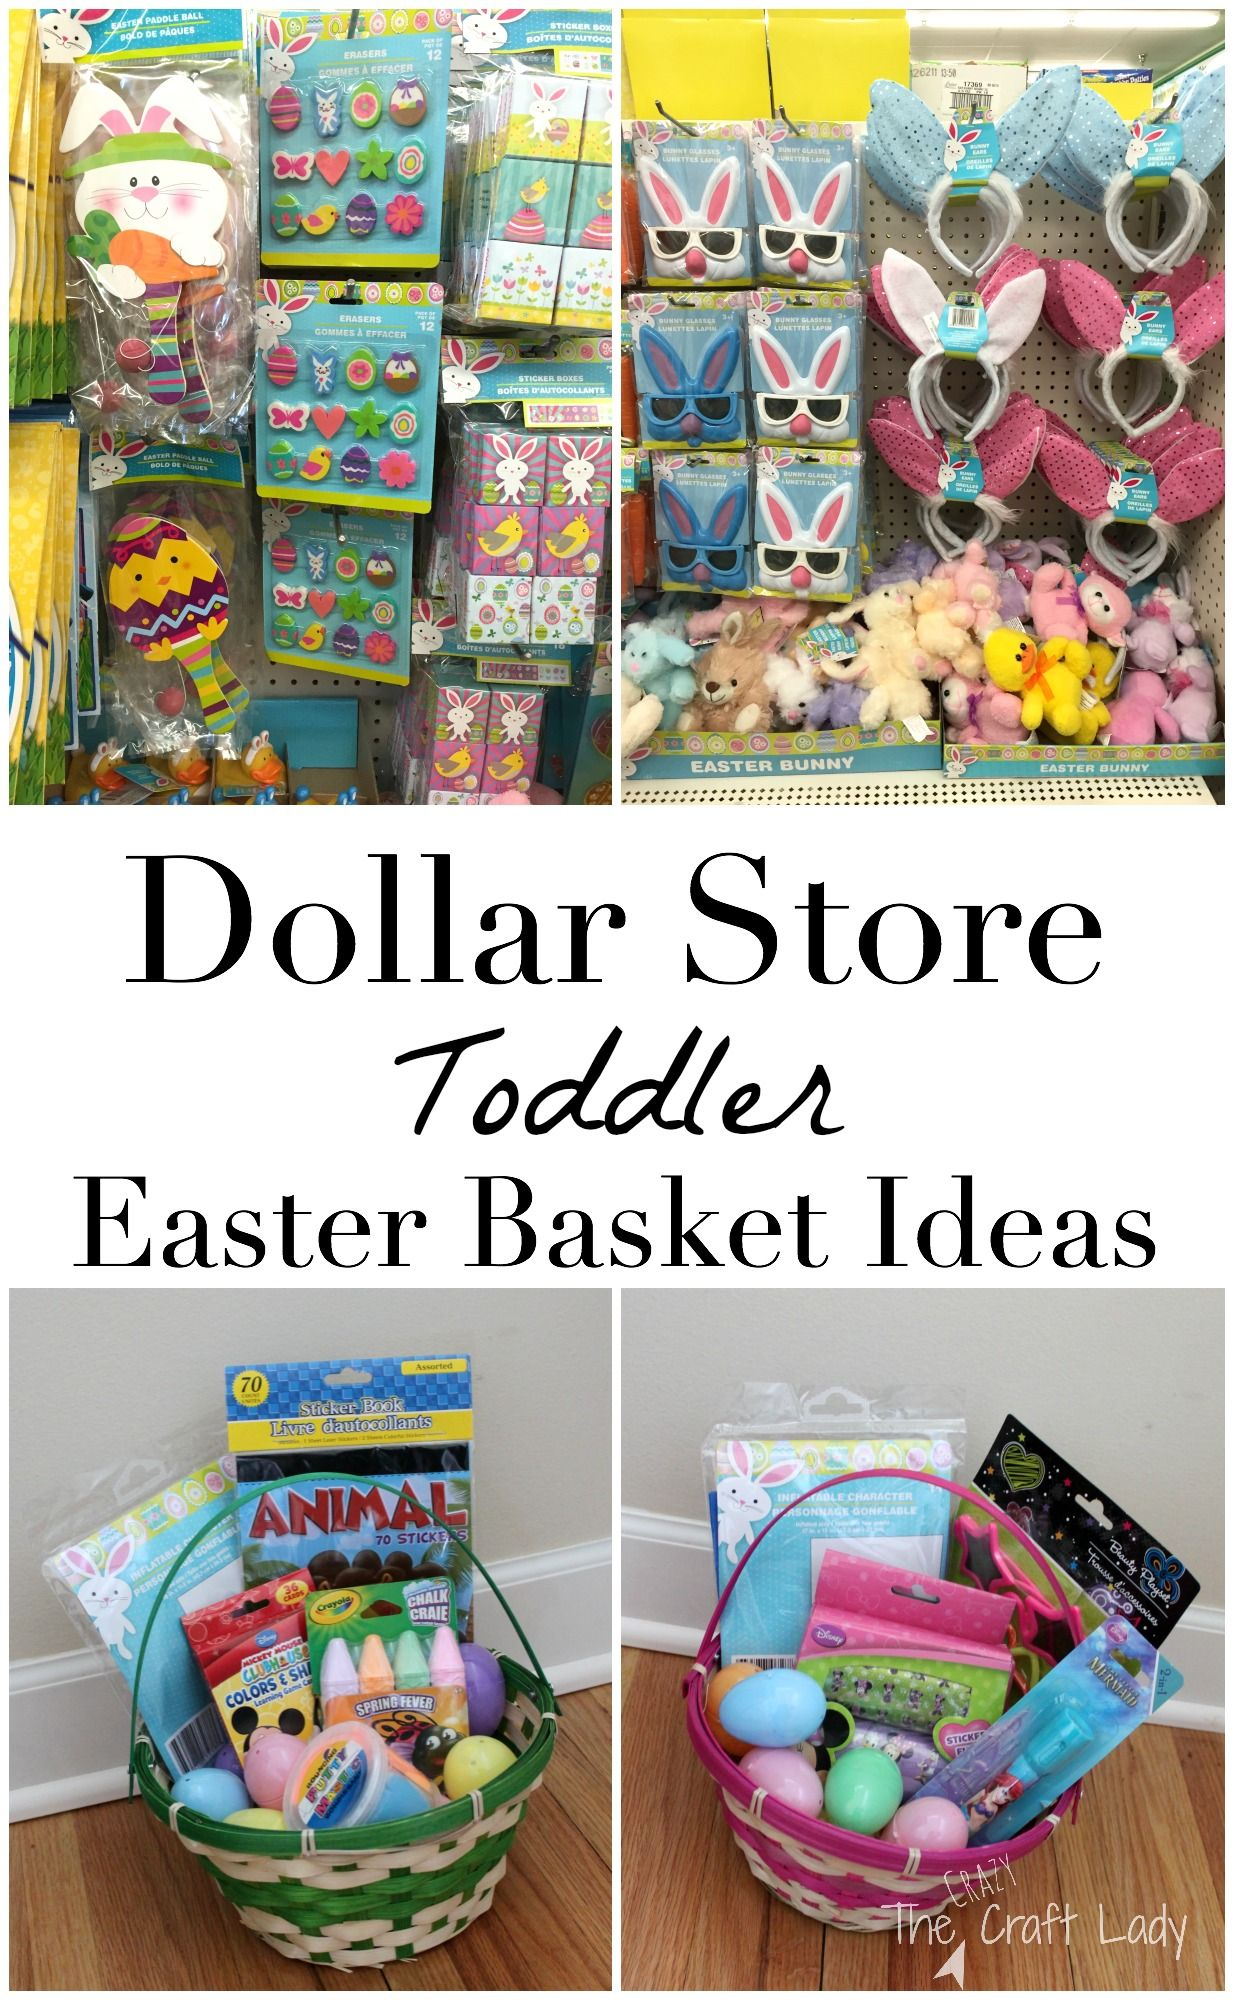 Toddler approved dollar store easter basket ideas basket ideas toddler approved dollar store easter basket ideas negle Image collections